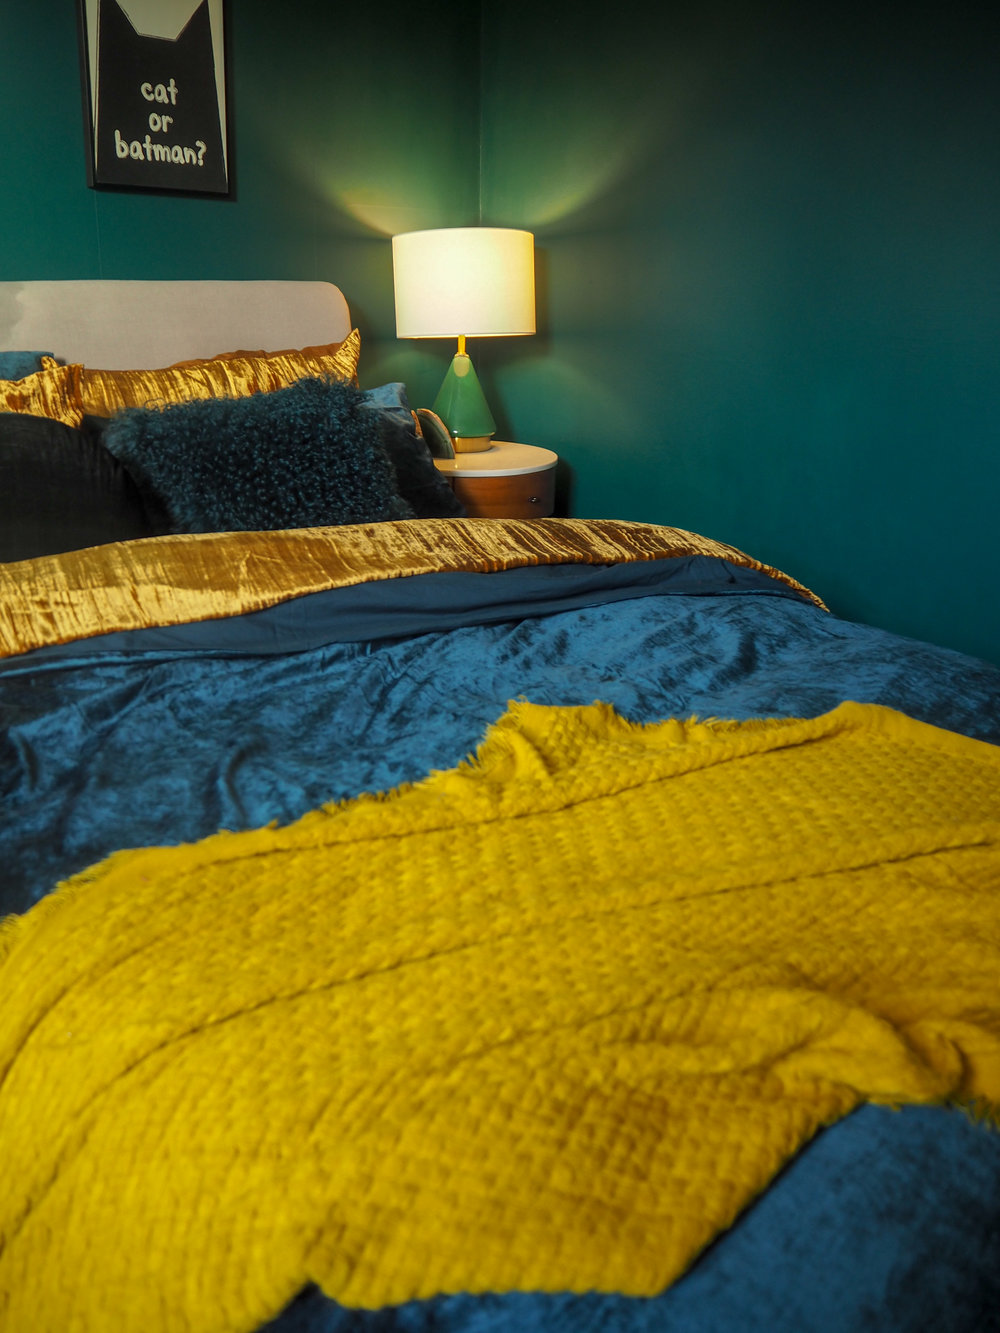 Crinkle Velvet Duvet Cover + Pillowcases   - Golden Oaks £149 from   West Elm   ;    Washed Cotton Lustre Velvet Duvet Cover + Pillowcases - Regal Blue   £149 from   West Elm   ;    Metalized Glass Table Lamp + USB - Small (Green)   £99 from   West Elm  ;   Mongolian Lamb Cushion Covers in teal   £69 from West Elm,   Round Lush Velvet Cushions in Green gables   £39 from   West Elm  ;   Penelope Bedside Table   £349 from   West Elm  ;   Agate Bookends in green   £24 (each) from   West Elm  ; Bed (Old);   Waffle Weave Throw in horseradish   £39 from   West Elm  .